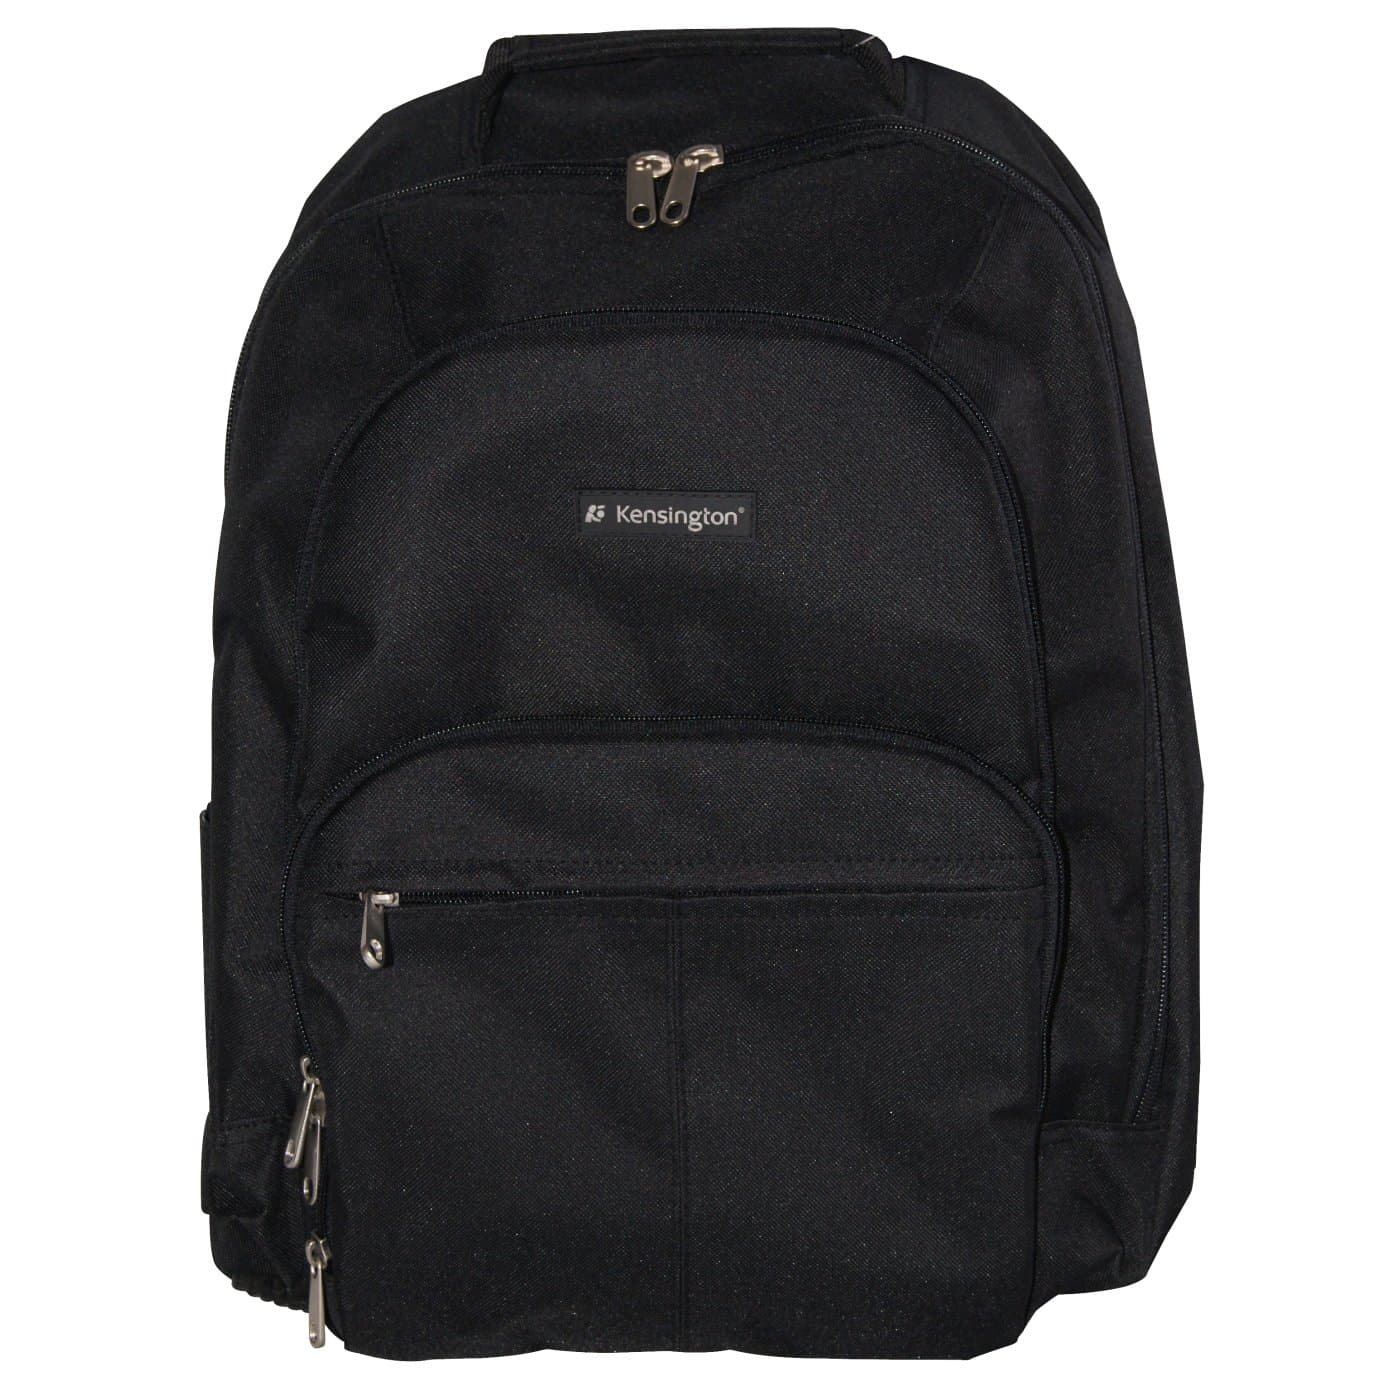 Mochila SP25 Classic Backpack, Kensington